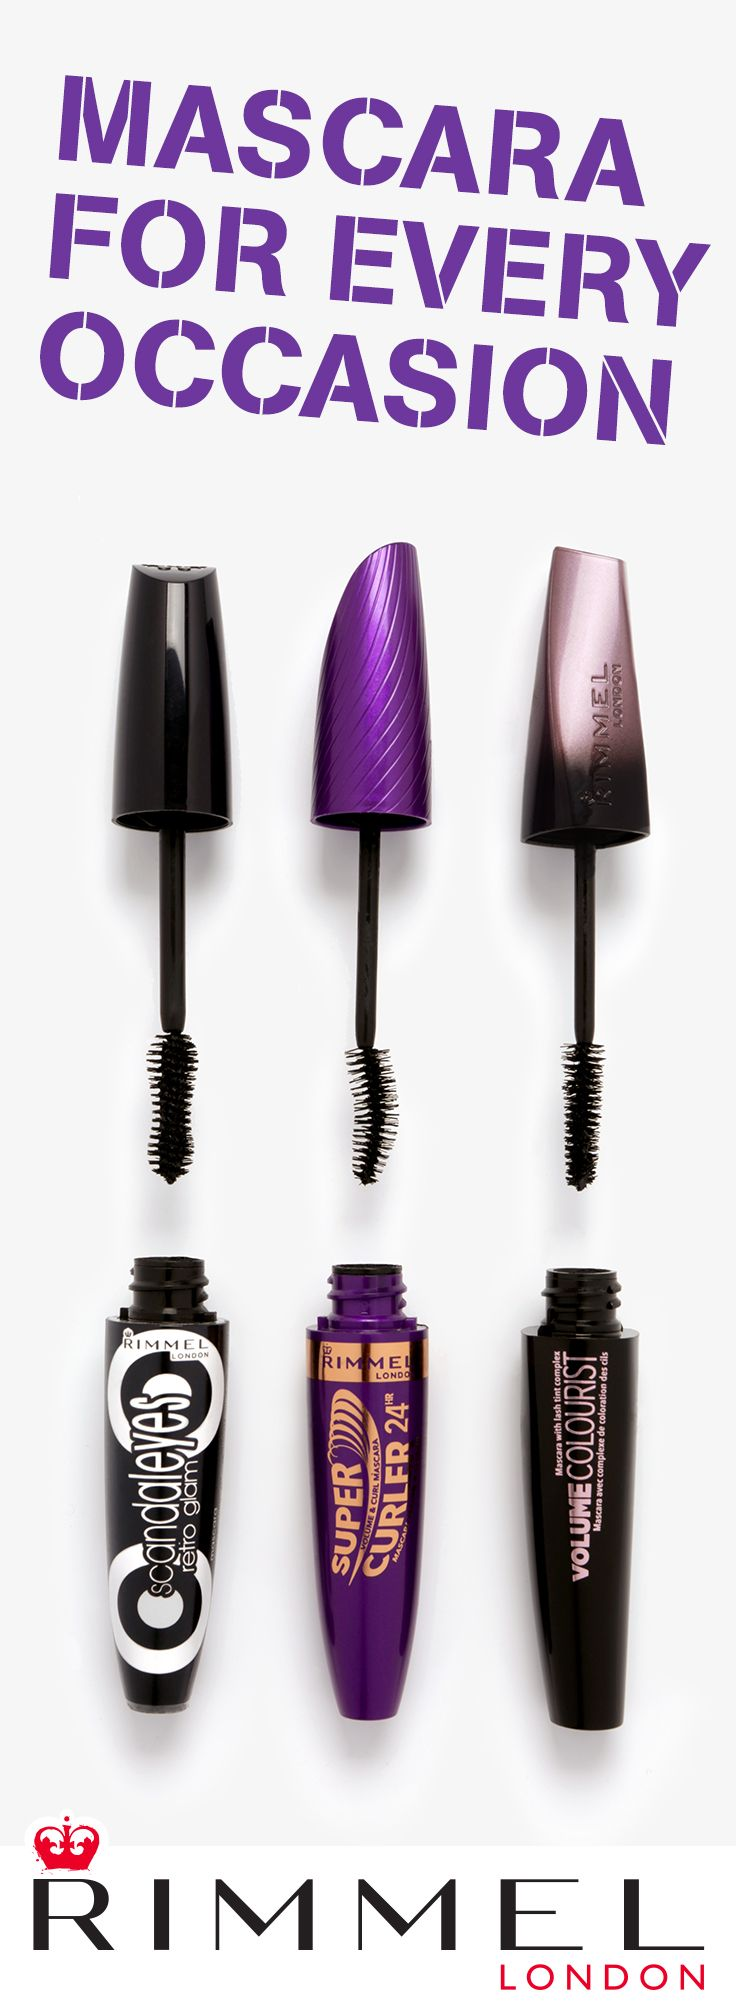 Three unique mascaras, three guaranteed-gorgeous lash looks. Rimmel London Scandaleyes Retro Glam Mascara is the perfect fit for a wide-eyed, falsies effect. Try 24-hour Supercurler for combined volume and instant curling. And Volume Colourist tints over time for naturally dramatic lashes. Find your new mascara here: